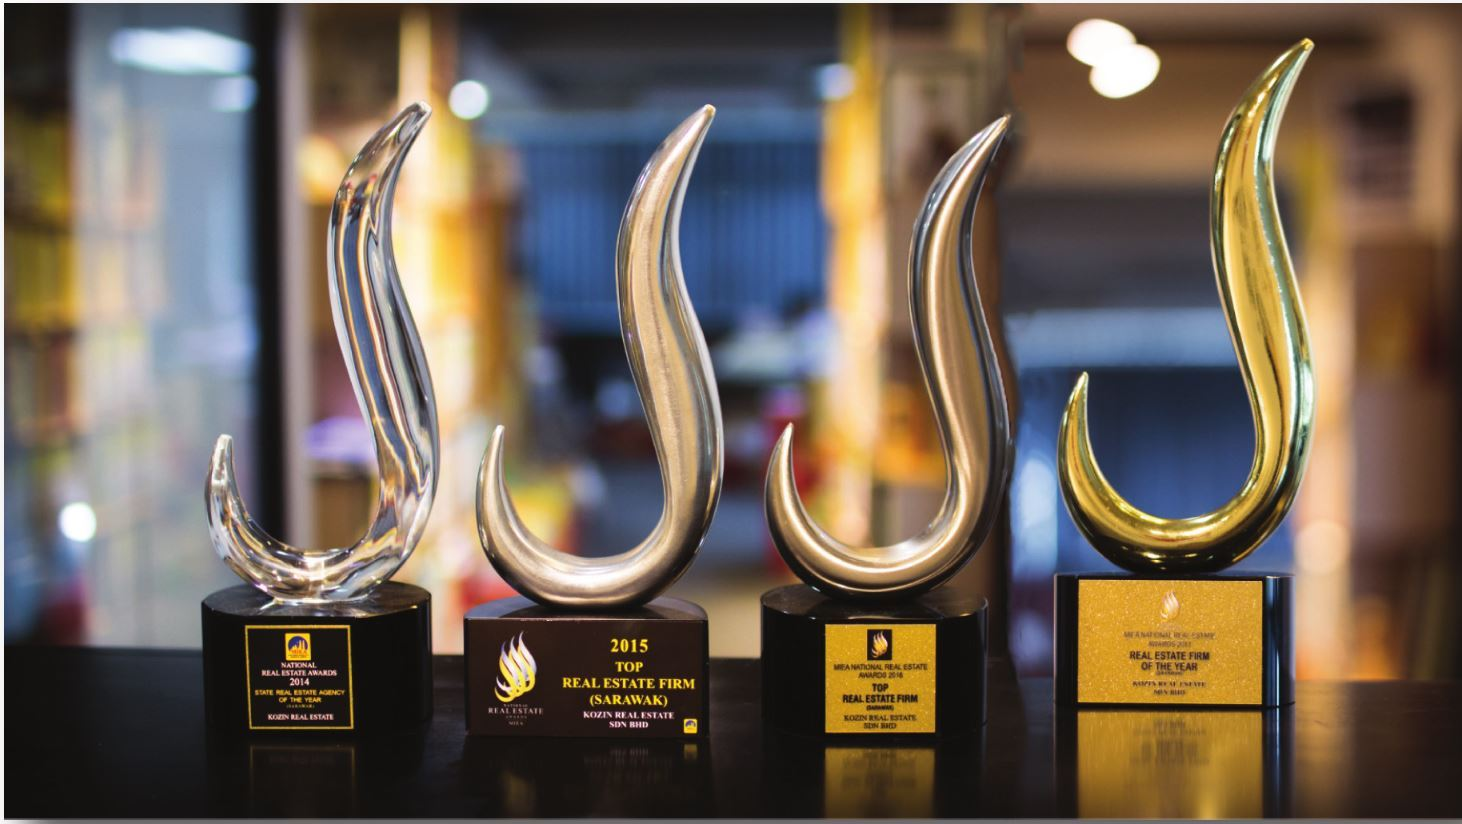 Miea national real estate awards trophy propsocial